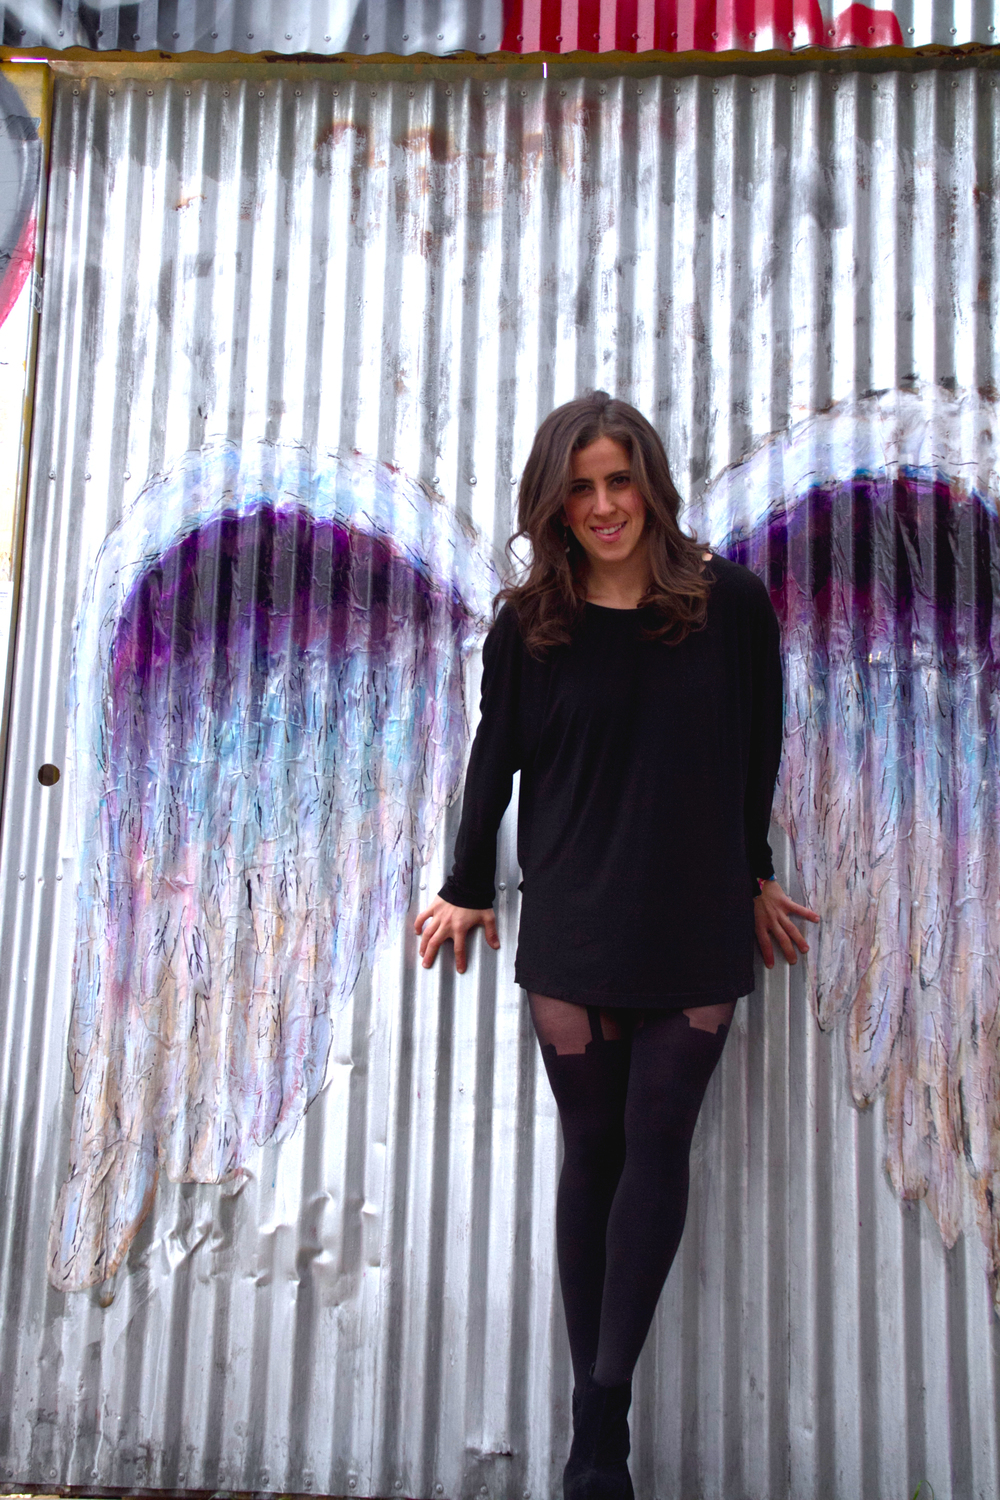 Lizy has formed collaborative relationships with some of the artists she interviews. Colette, the creator of these angel wings, is one of them.